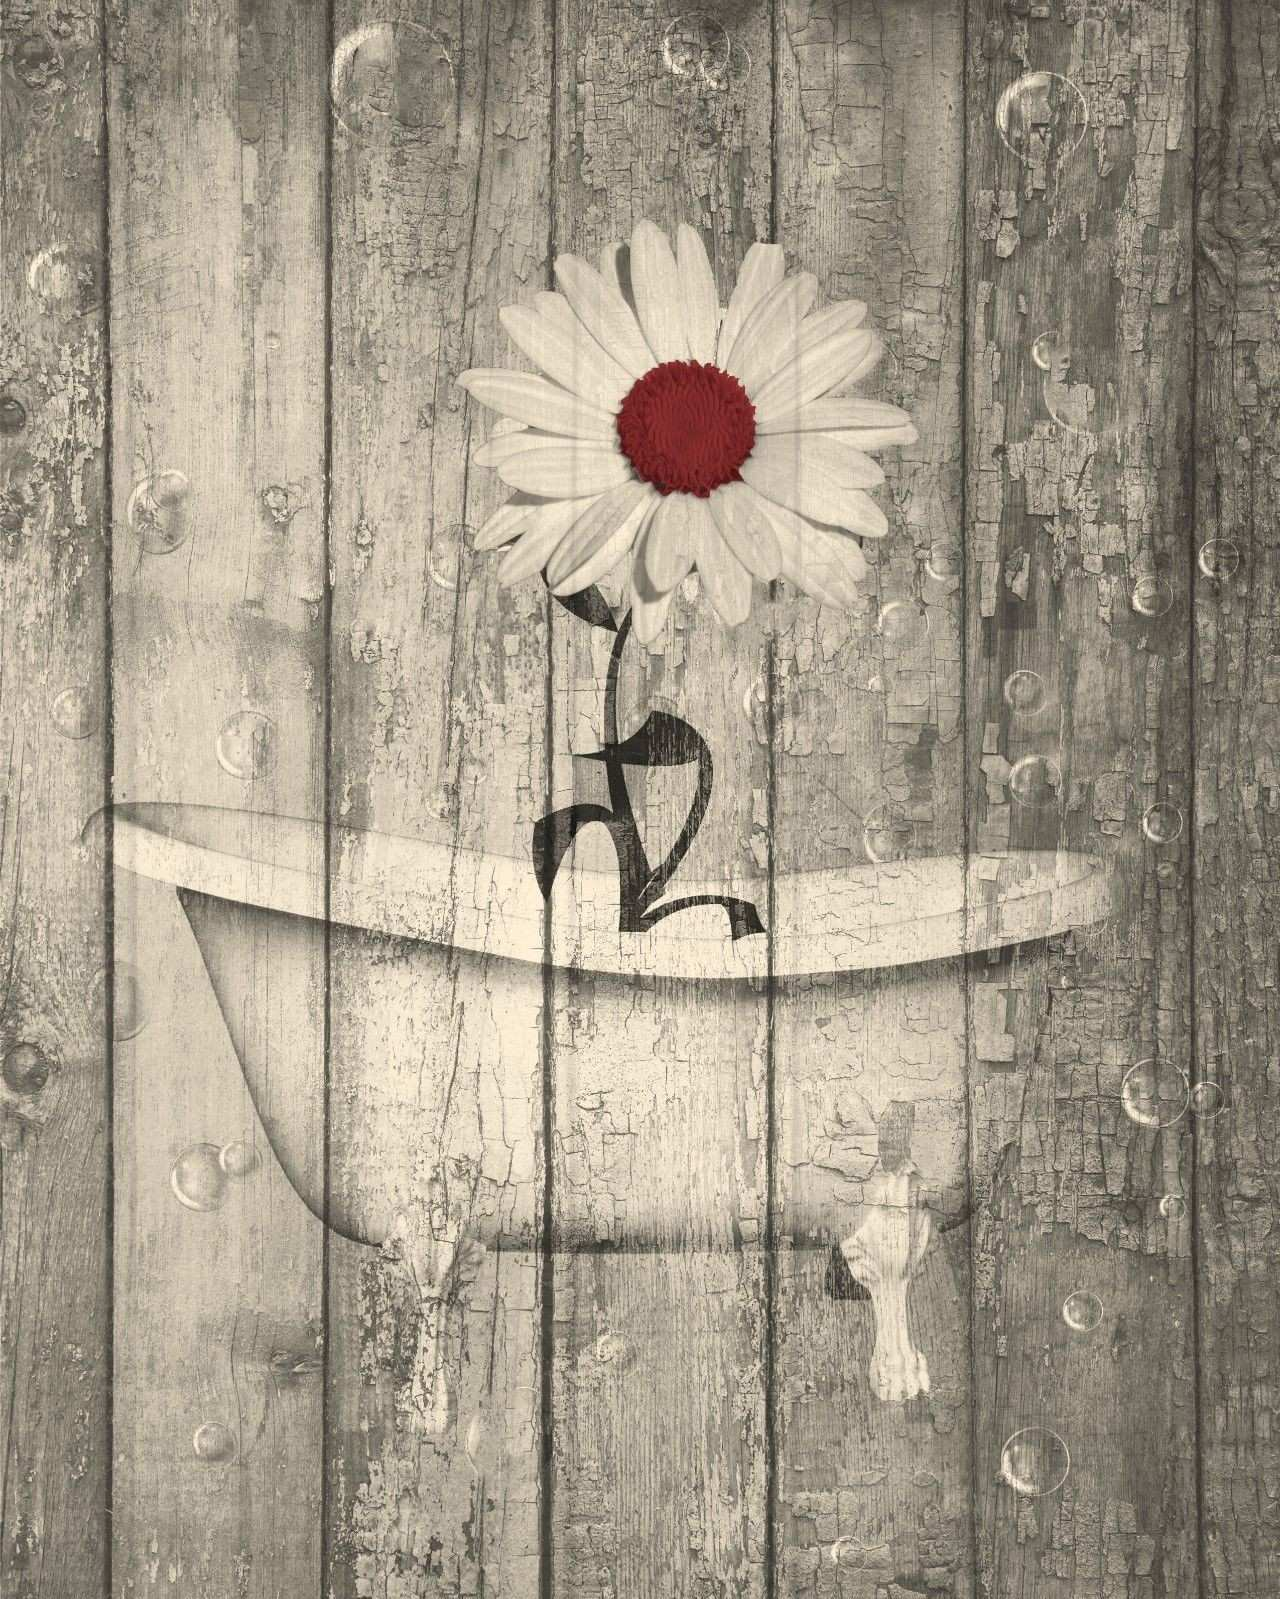 Rustic Dark Red Brown Daisy Flower Bathroom Home Decor Matted Wall